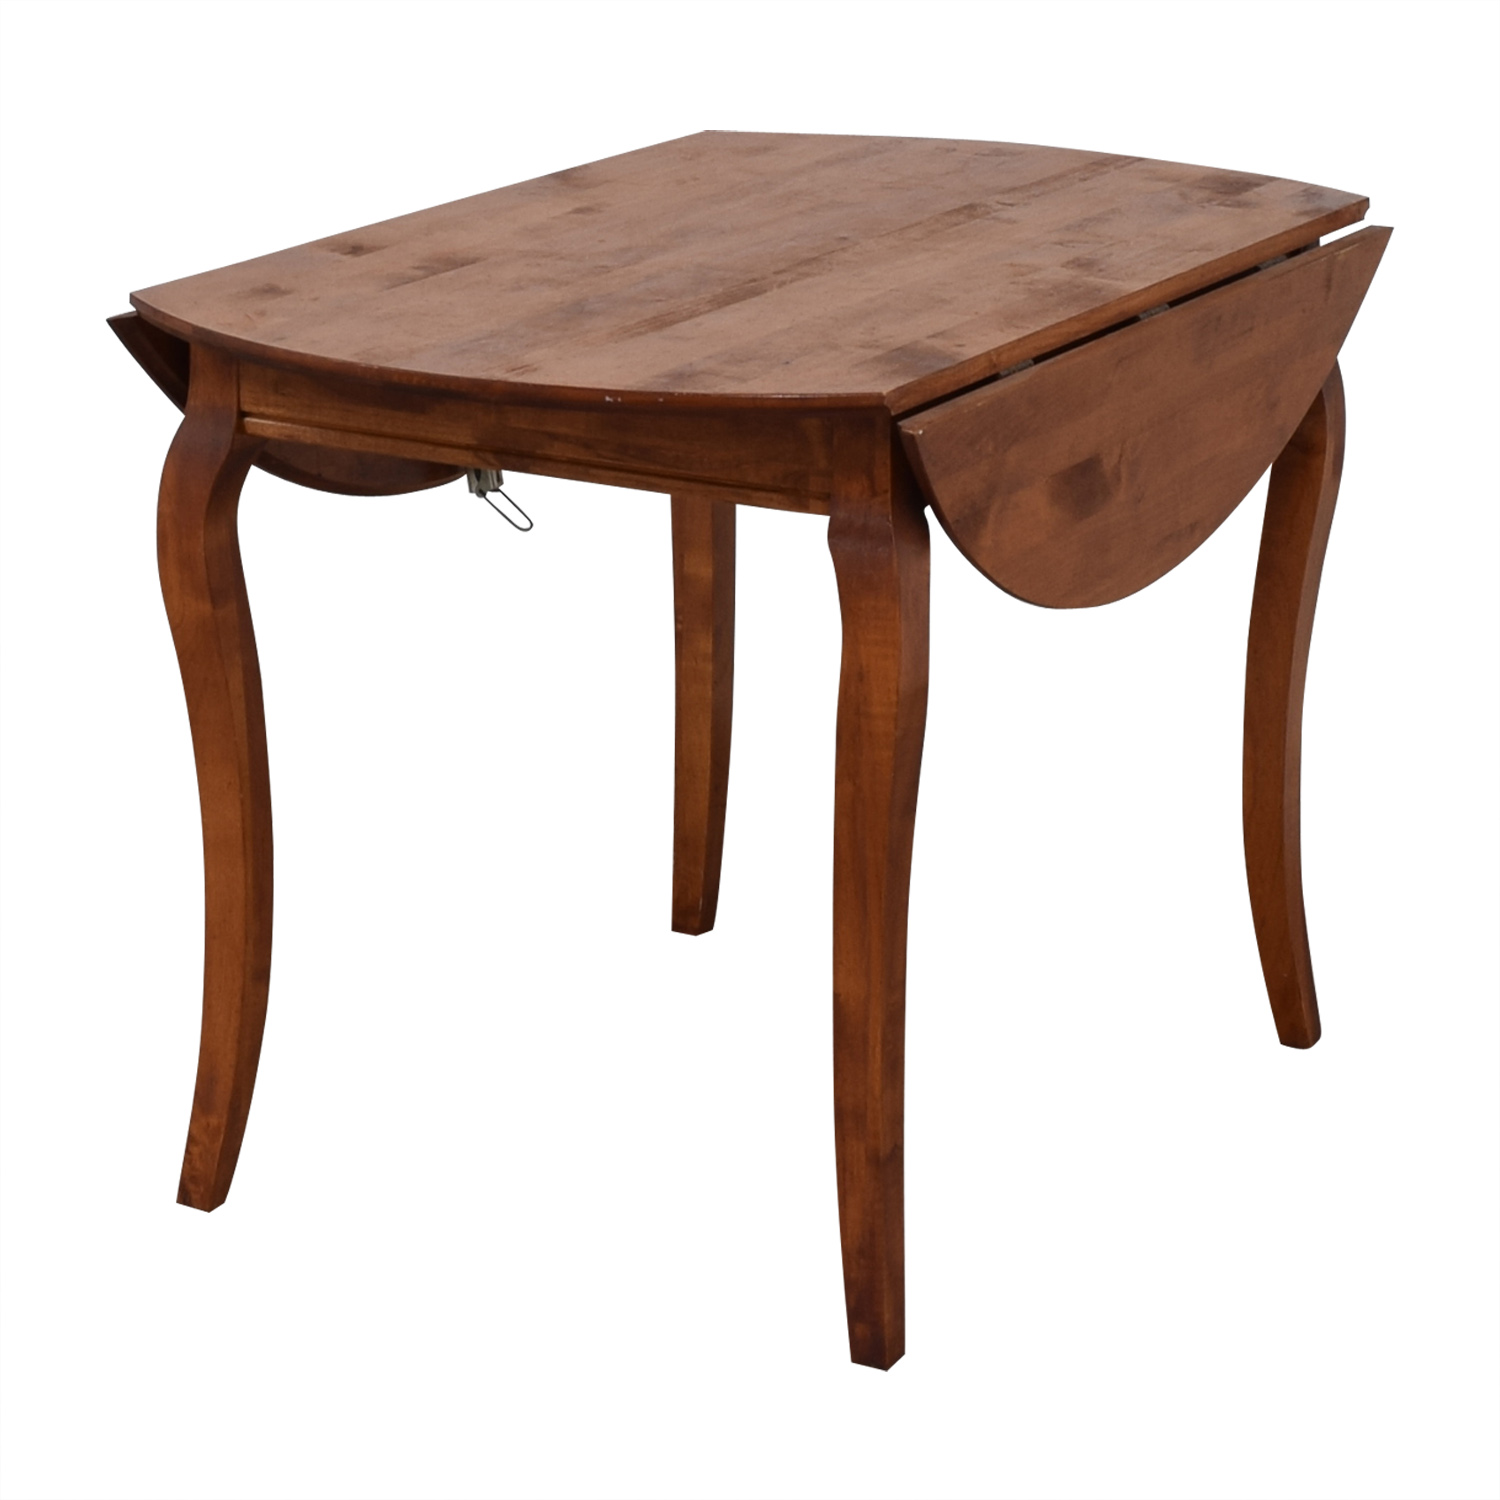 Folding Leaf Wood Dining Table dimensions